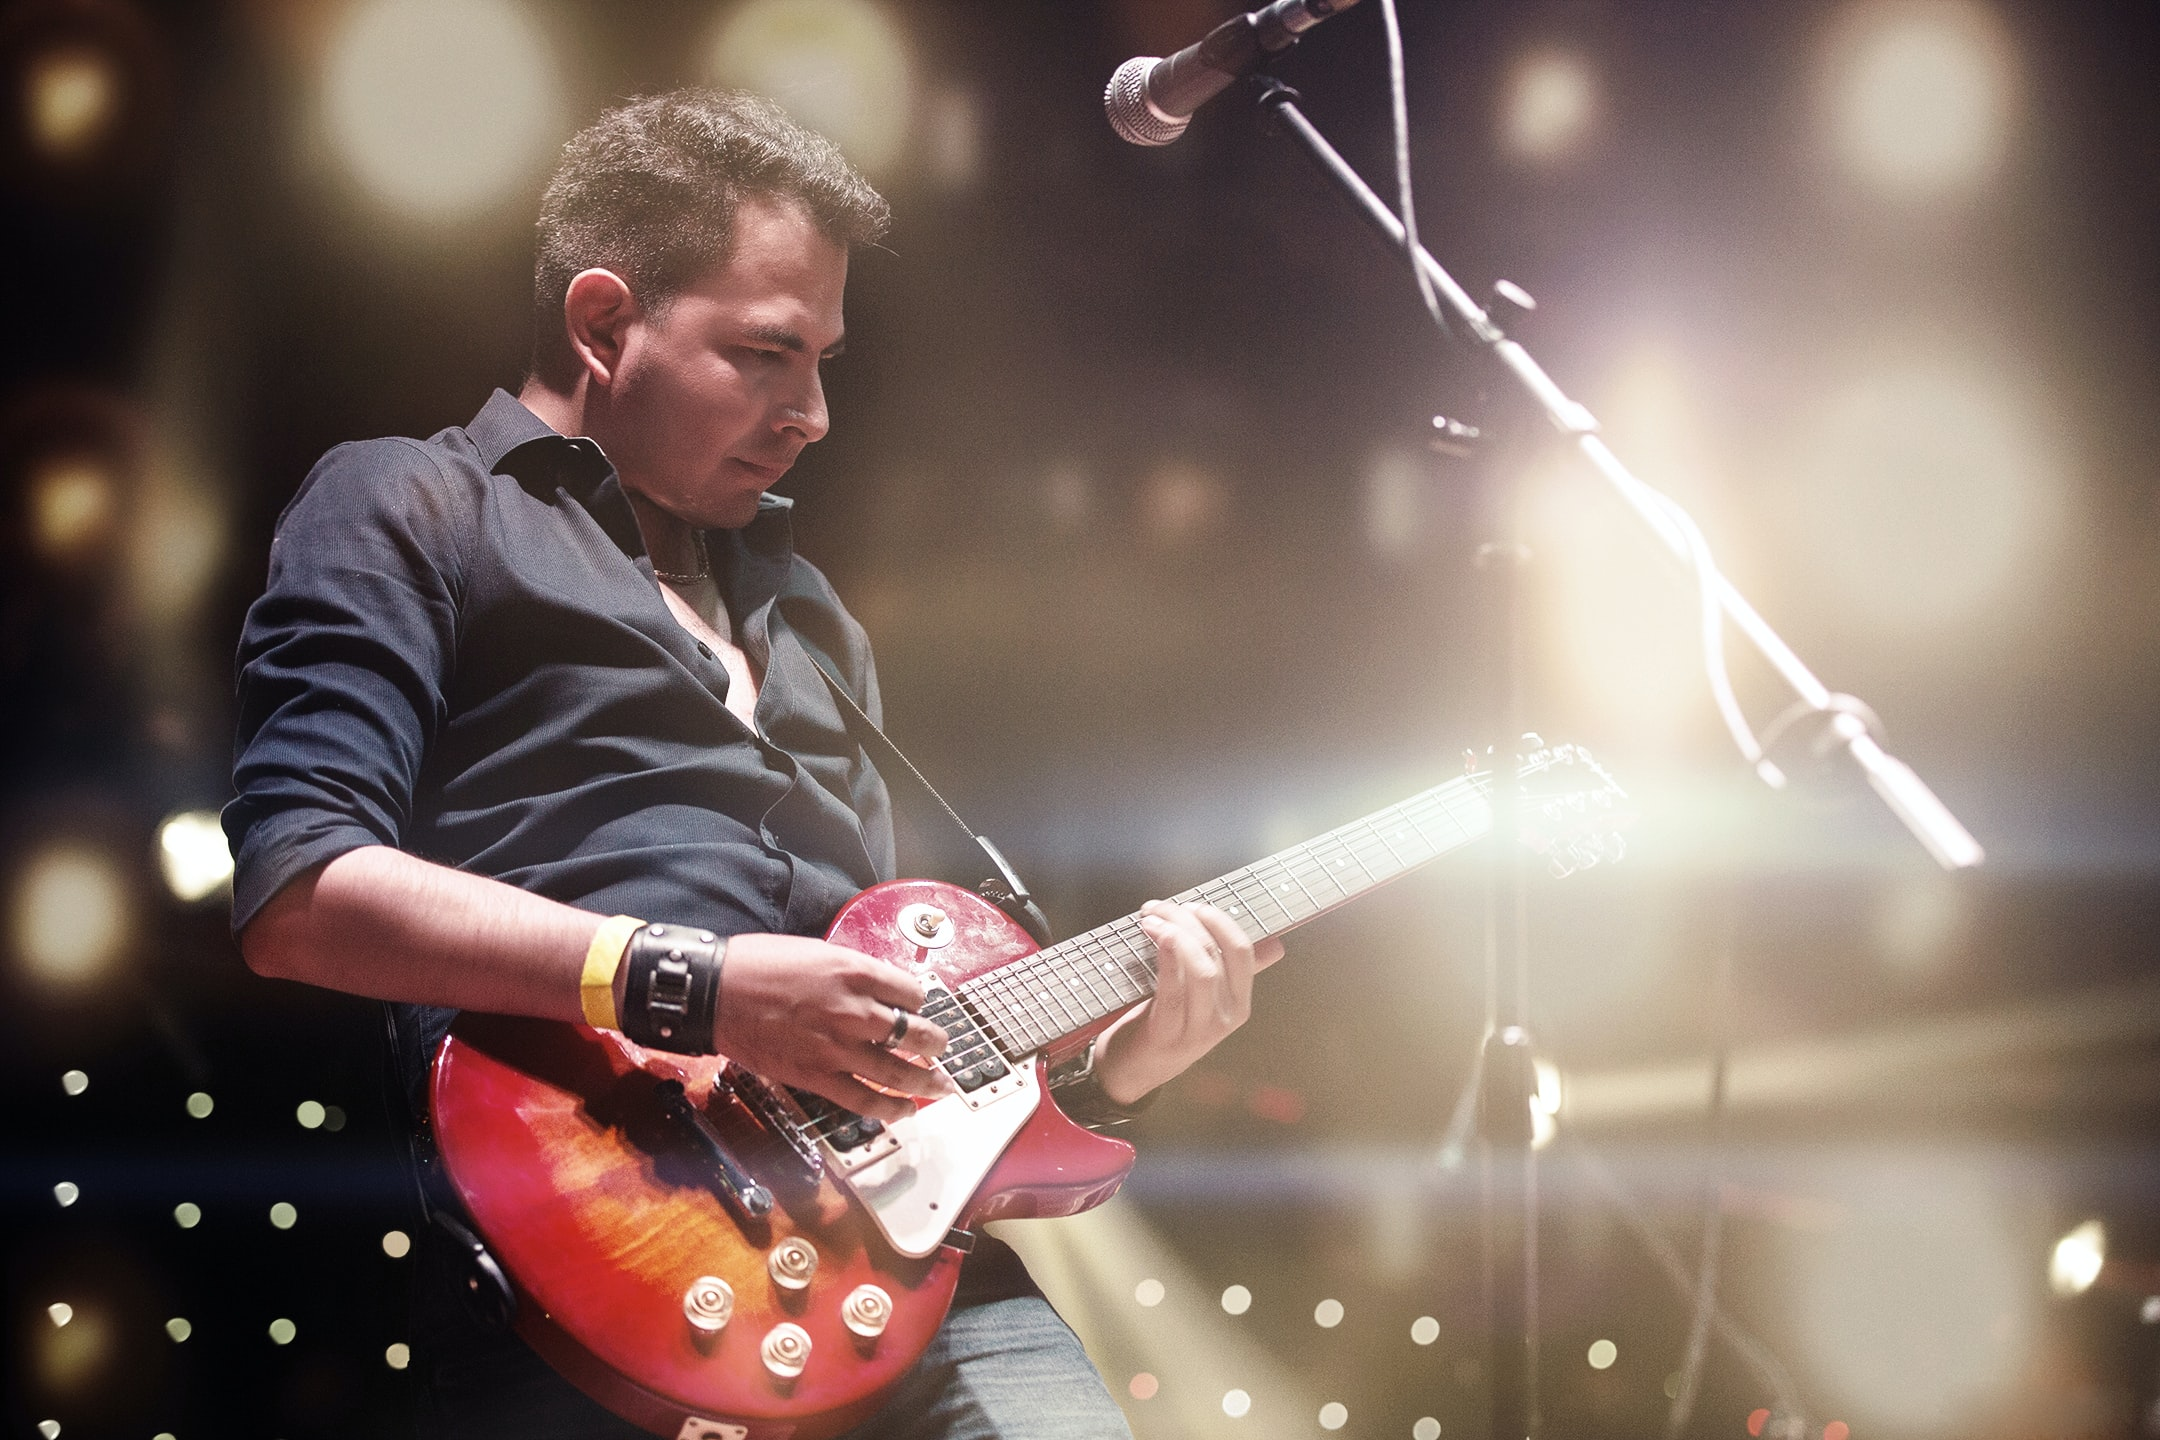 Man Playing Electric Guitar | The Top 15 Guitar Terms You Need To Know